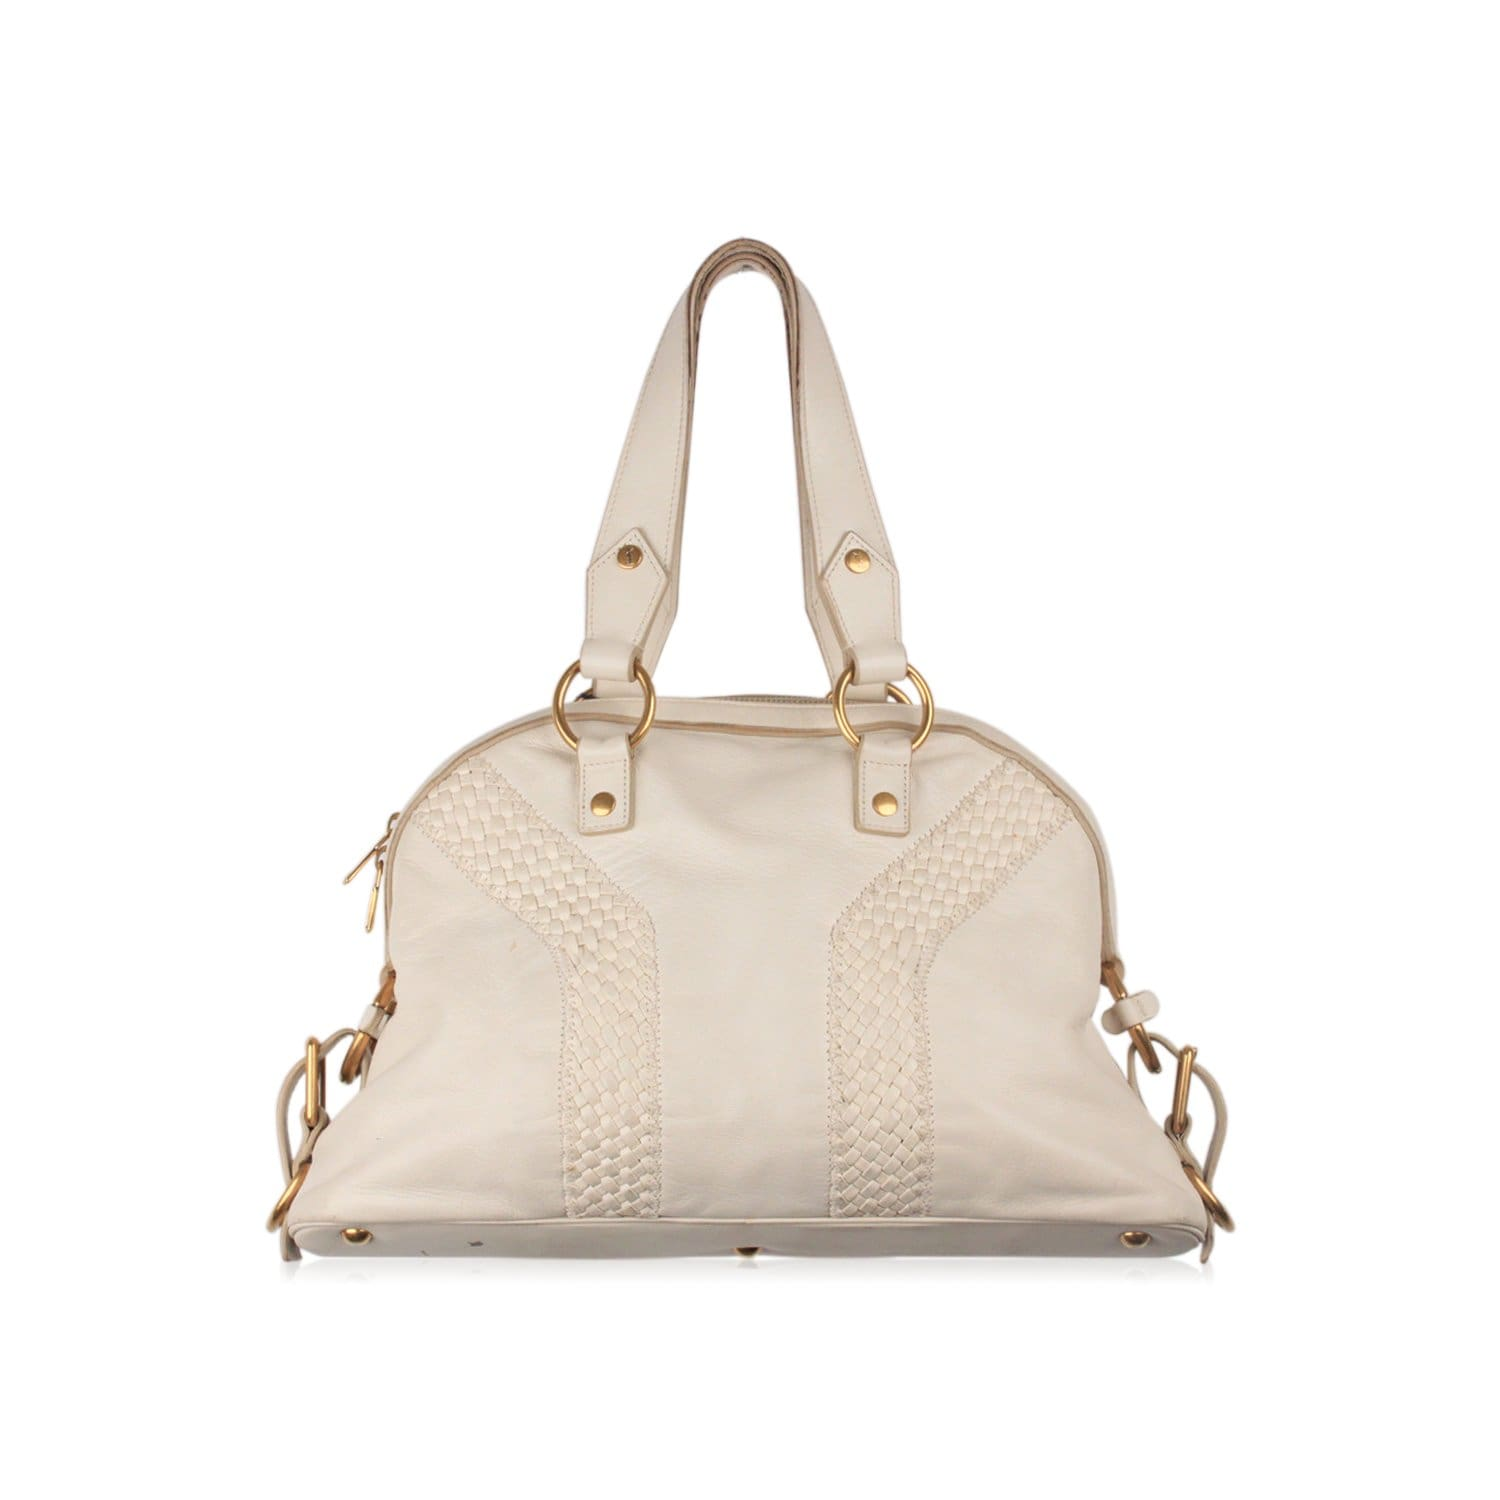 fe409255124a Enjoy YSL White Leather Tote Bag Mod. Muse at OPHERTYCIOCCI ...